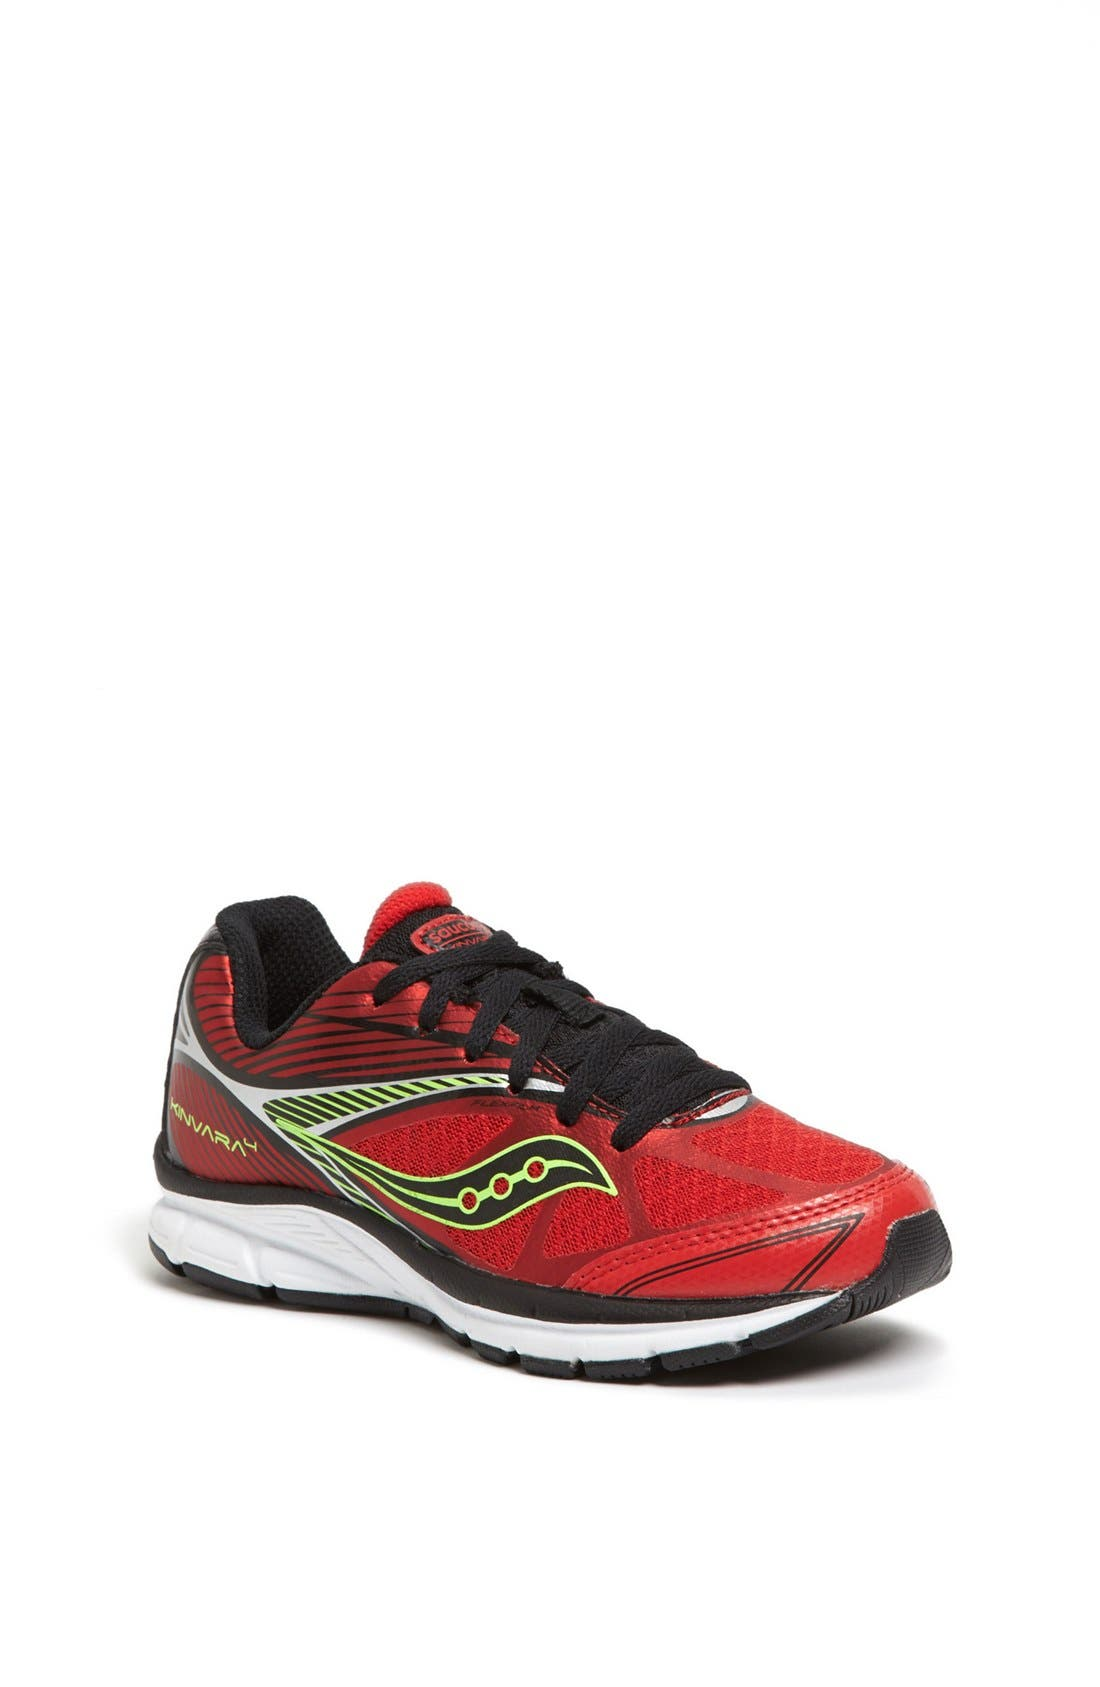 Main Image - Saucony 'Kinvara' Athletic Shoe (Toddler, Little Kid & Big Kid) (Online Only)